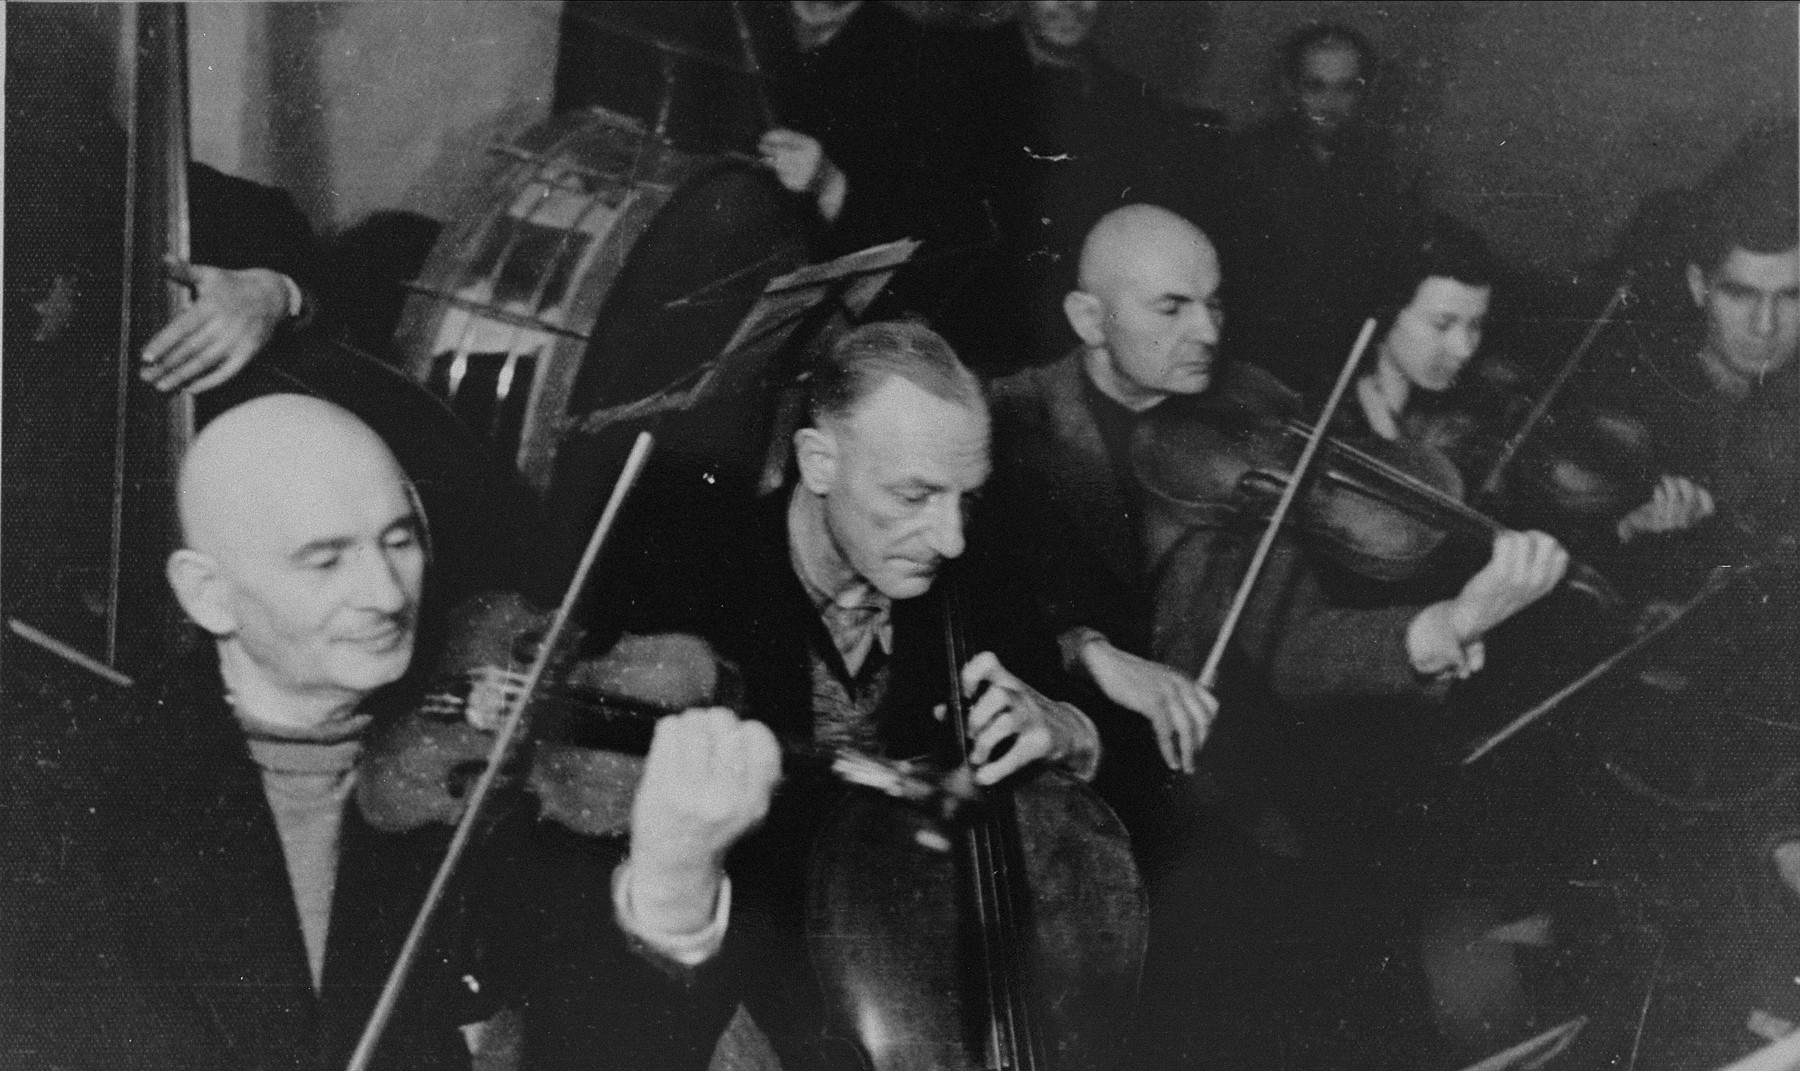 Performance of the Kovno ghetto orchestra.    Among those pictured are: Mordechai Borstein (left), Korijski (middle), and Maya Gladstein (right).  Bornstein and Gladstein both survived and moved to Israel, while Korijski perished.